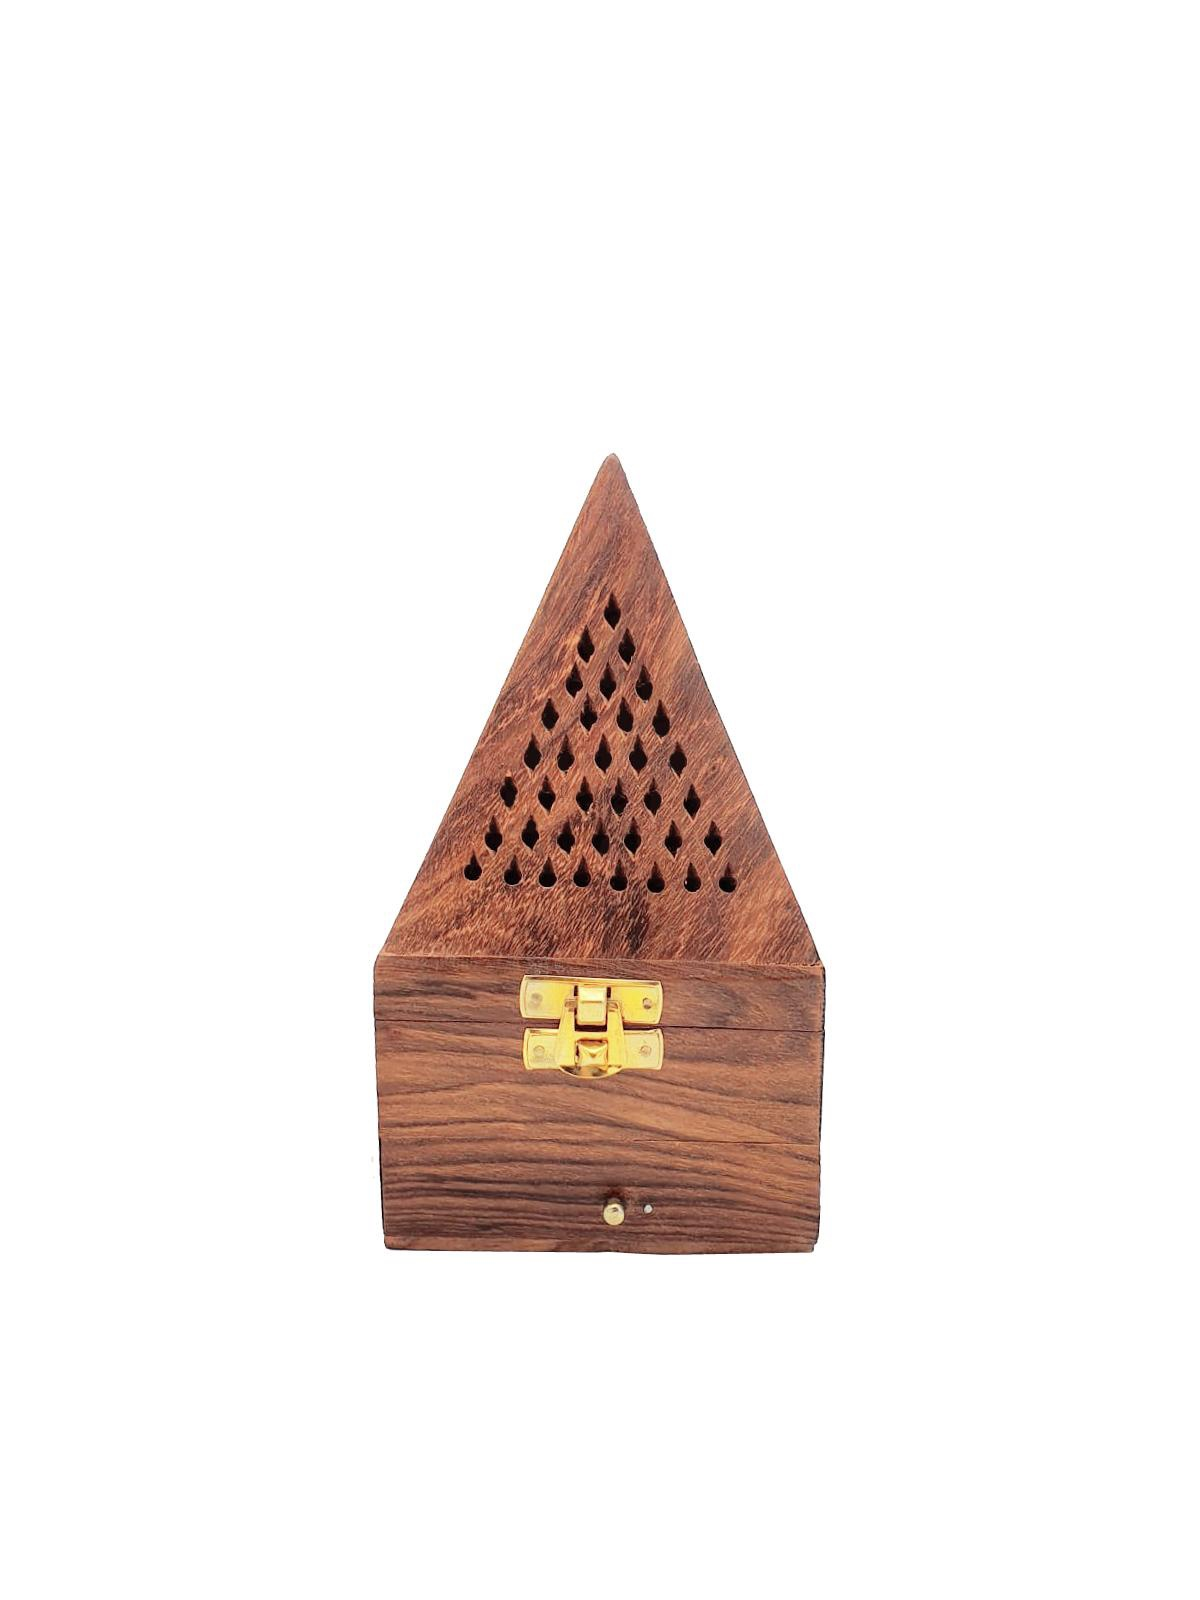 Buy Wooden Pyramid Incense Burner - Large